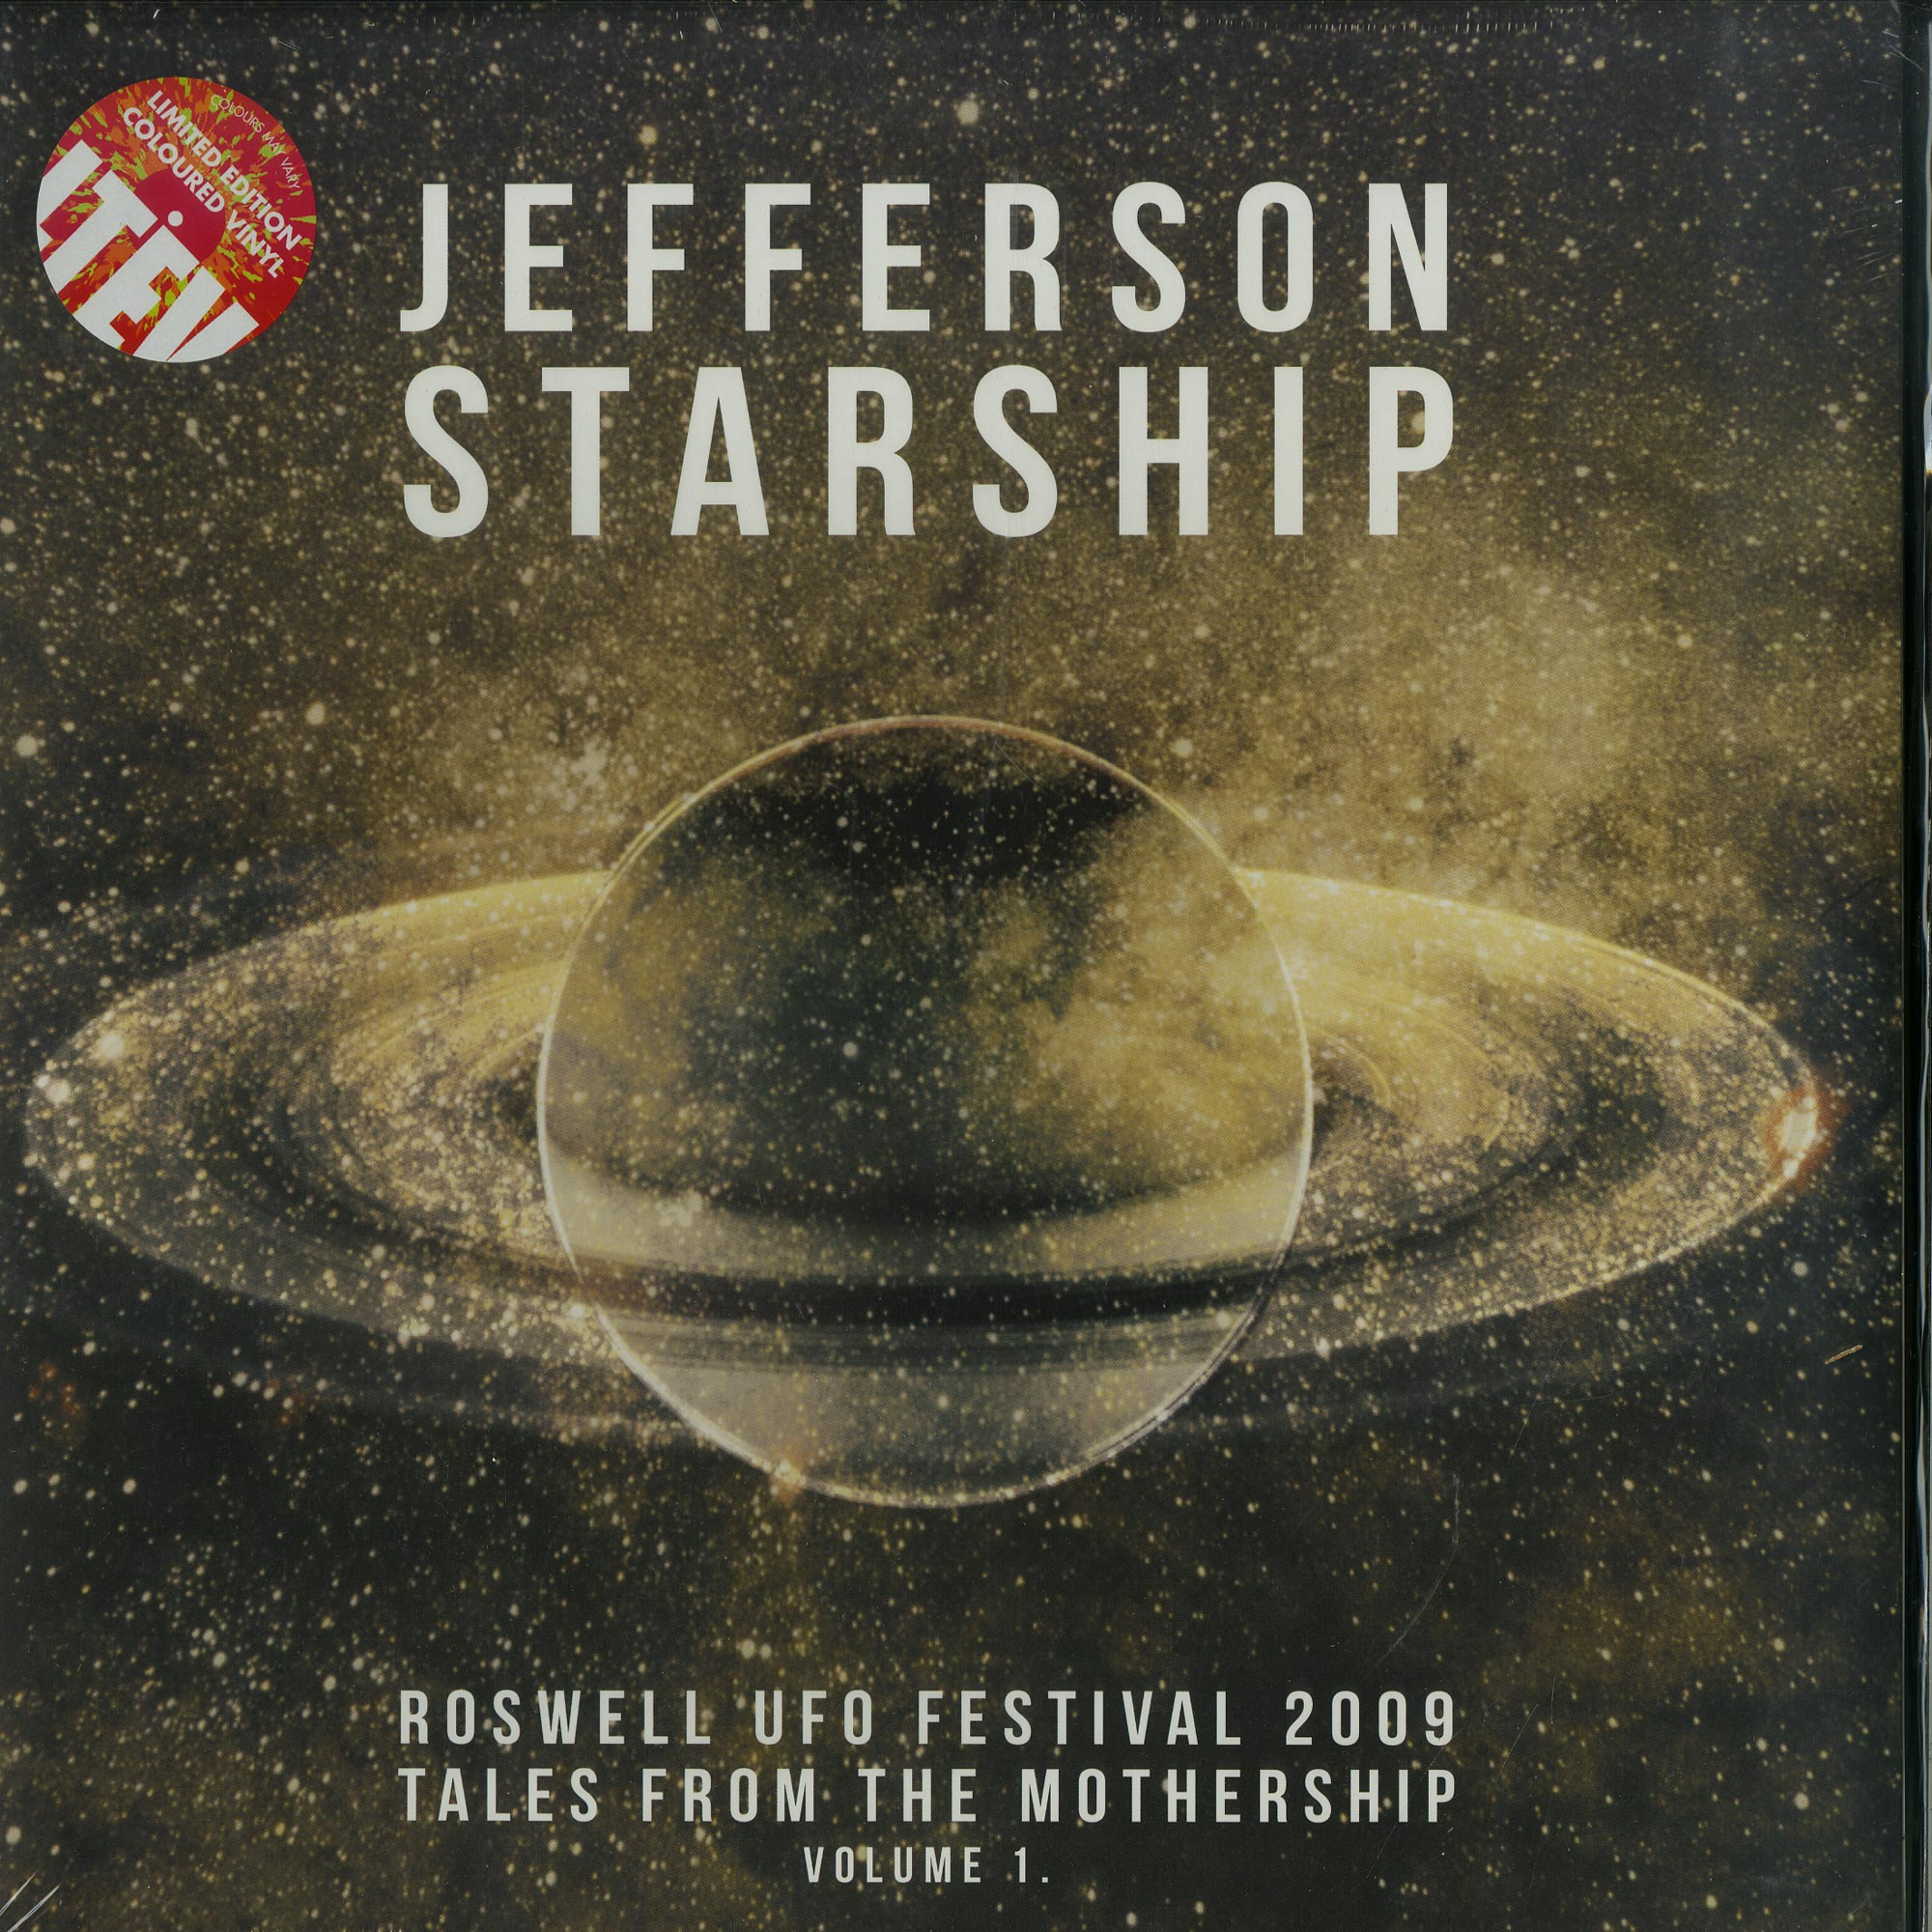 Jefferson Starship - ROSWELL UFO FESTIVAL 2009 - TALES FROM THE MOTHERSHIP VOLUME 1